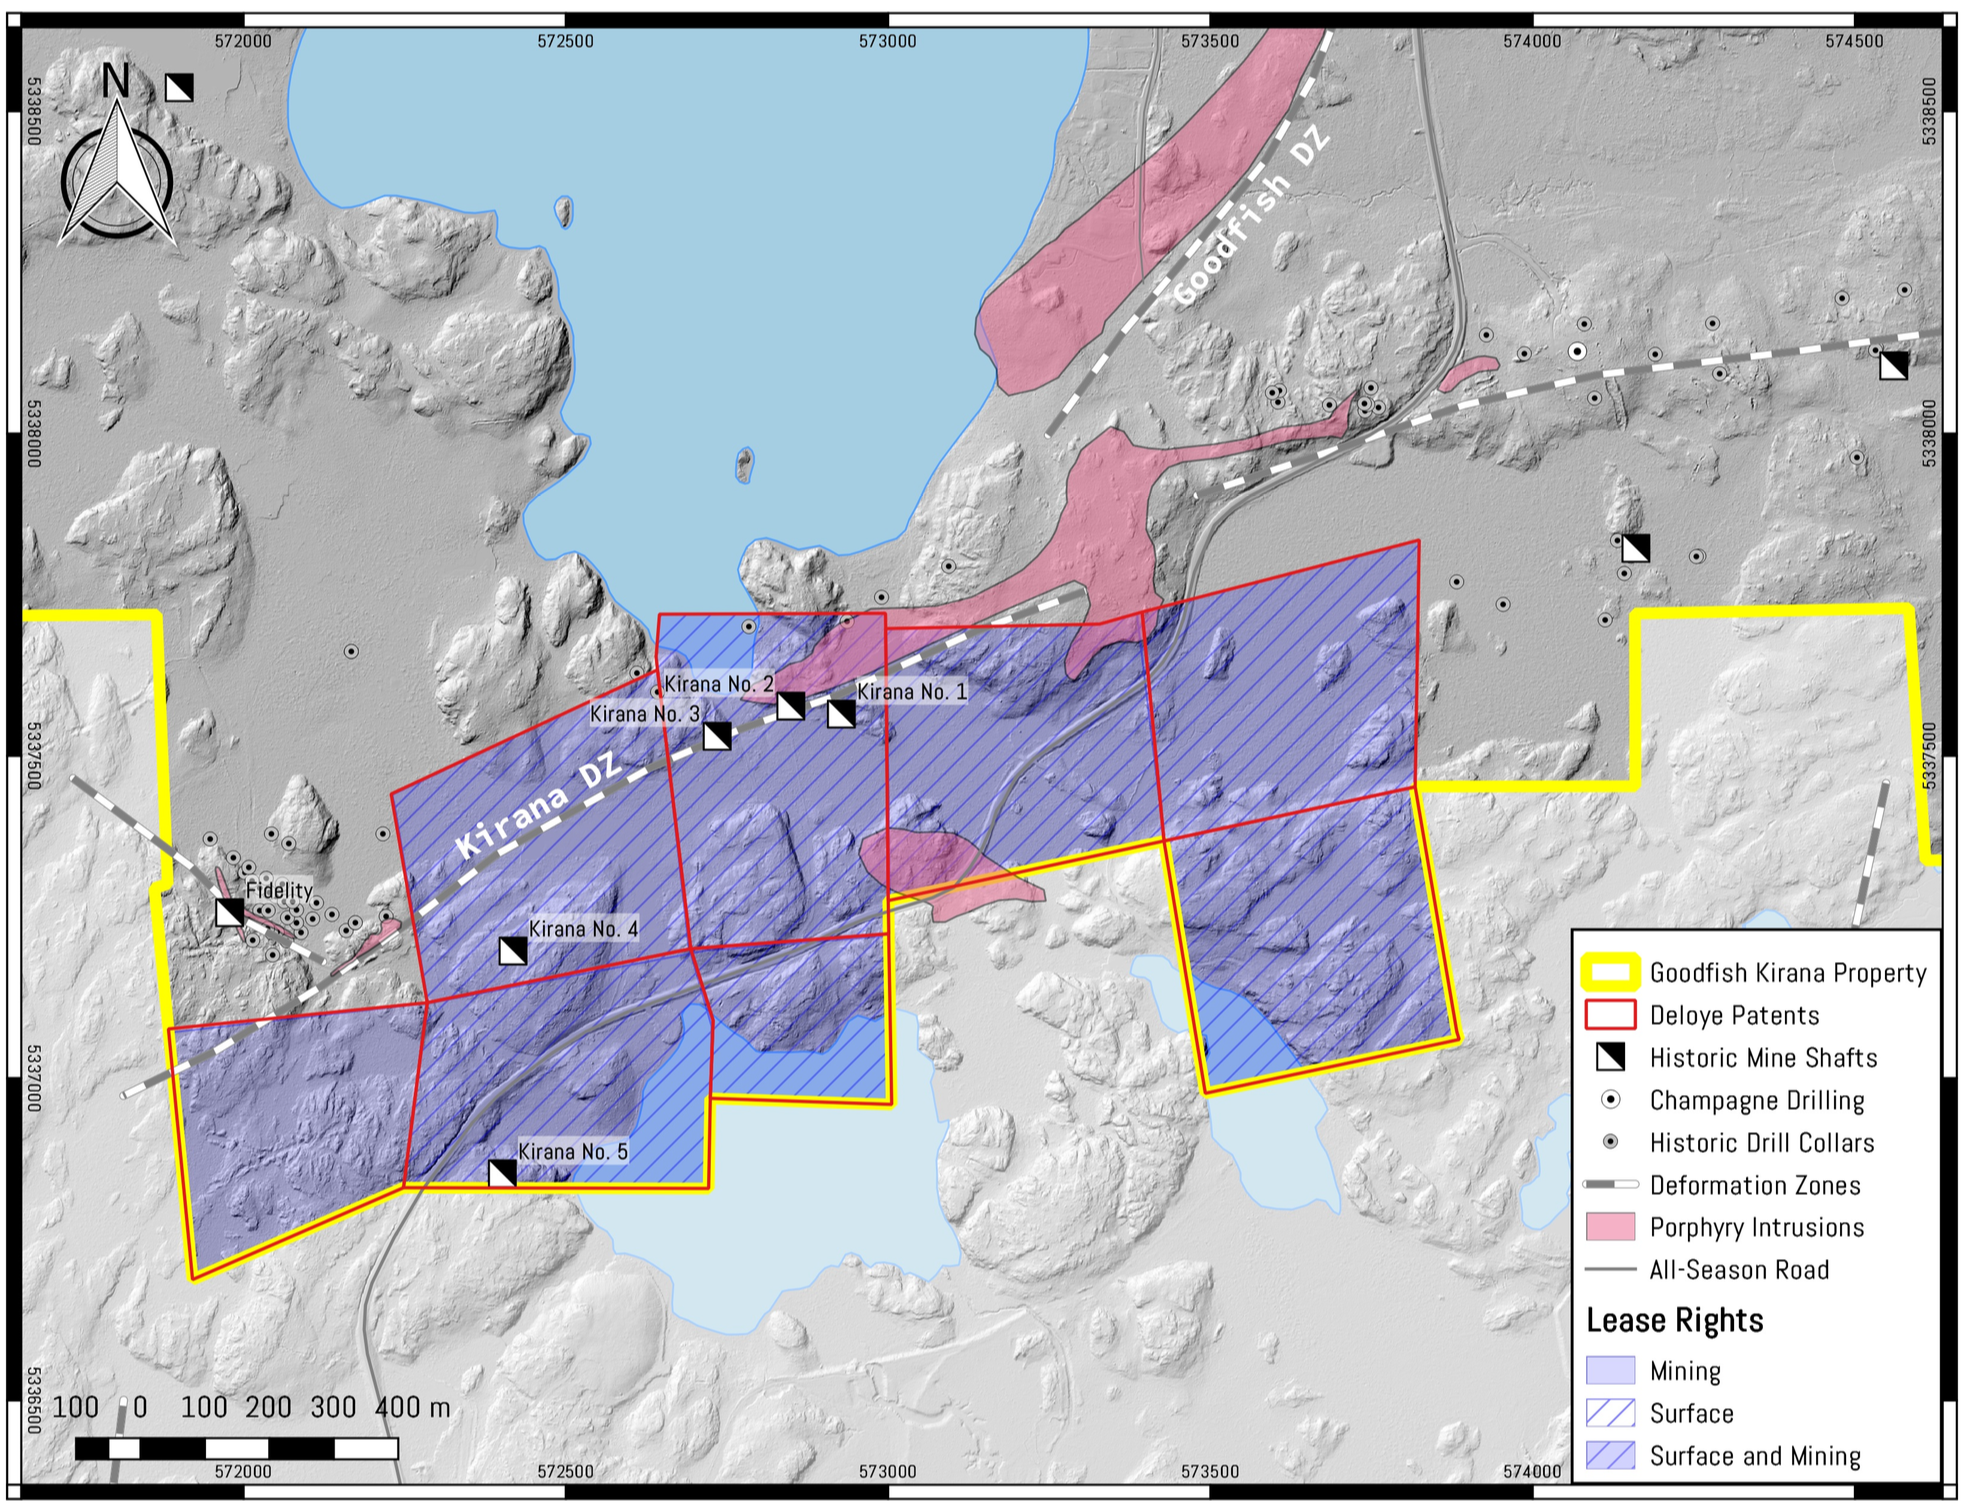 Fig. No. 1 – Location of the Deloye Claims and mine shafts, trenches, and deformations zones, contiguous with the Goodfish Kirana Property.